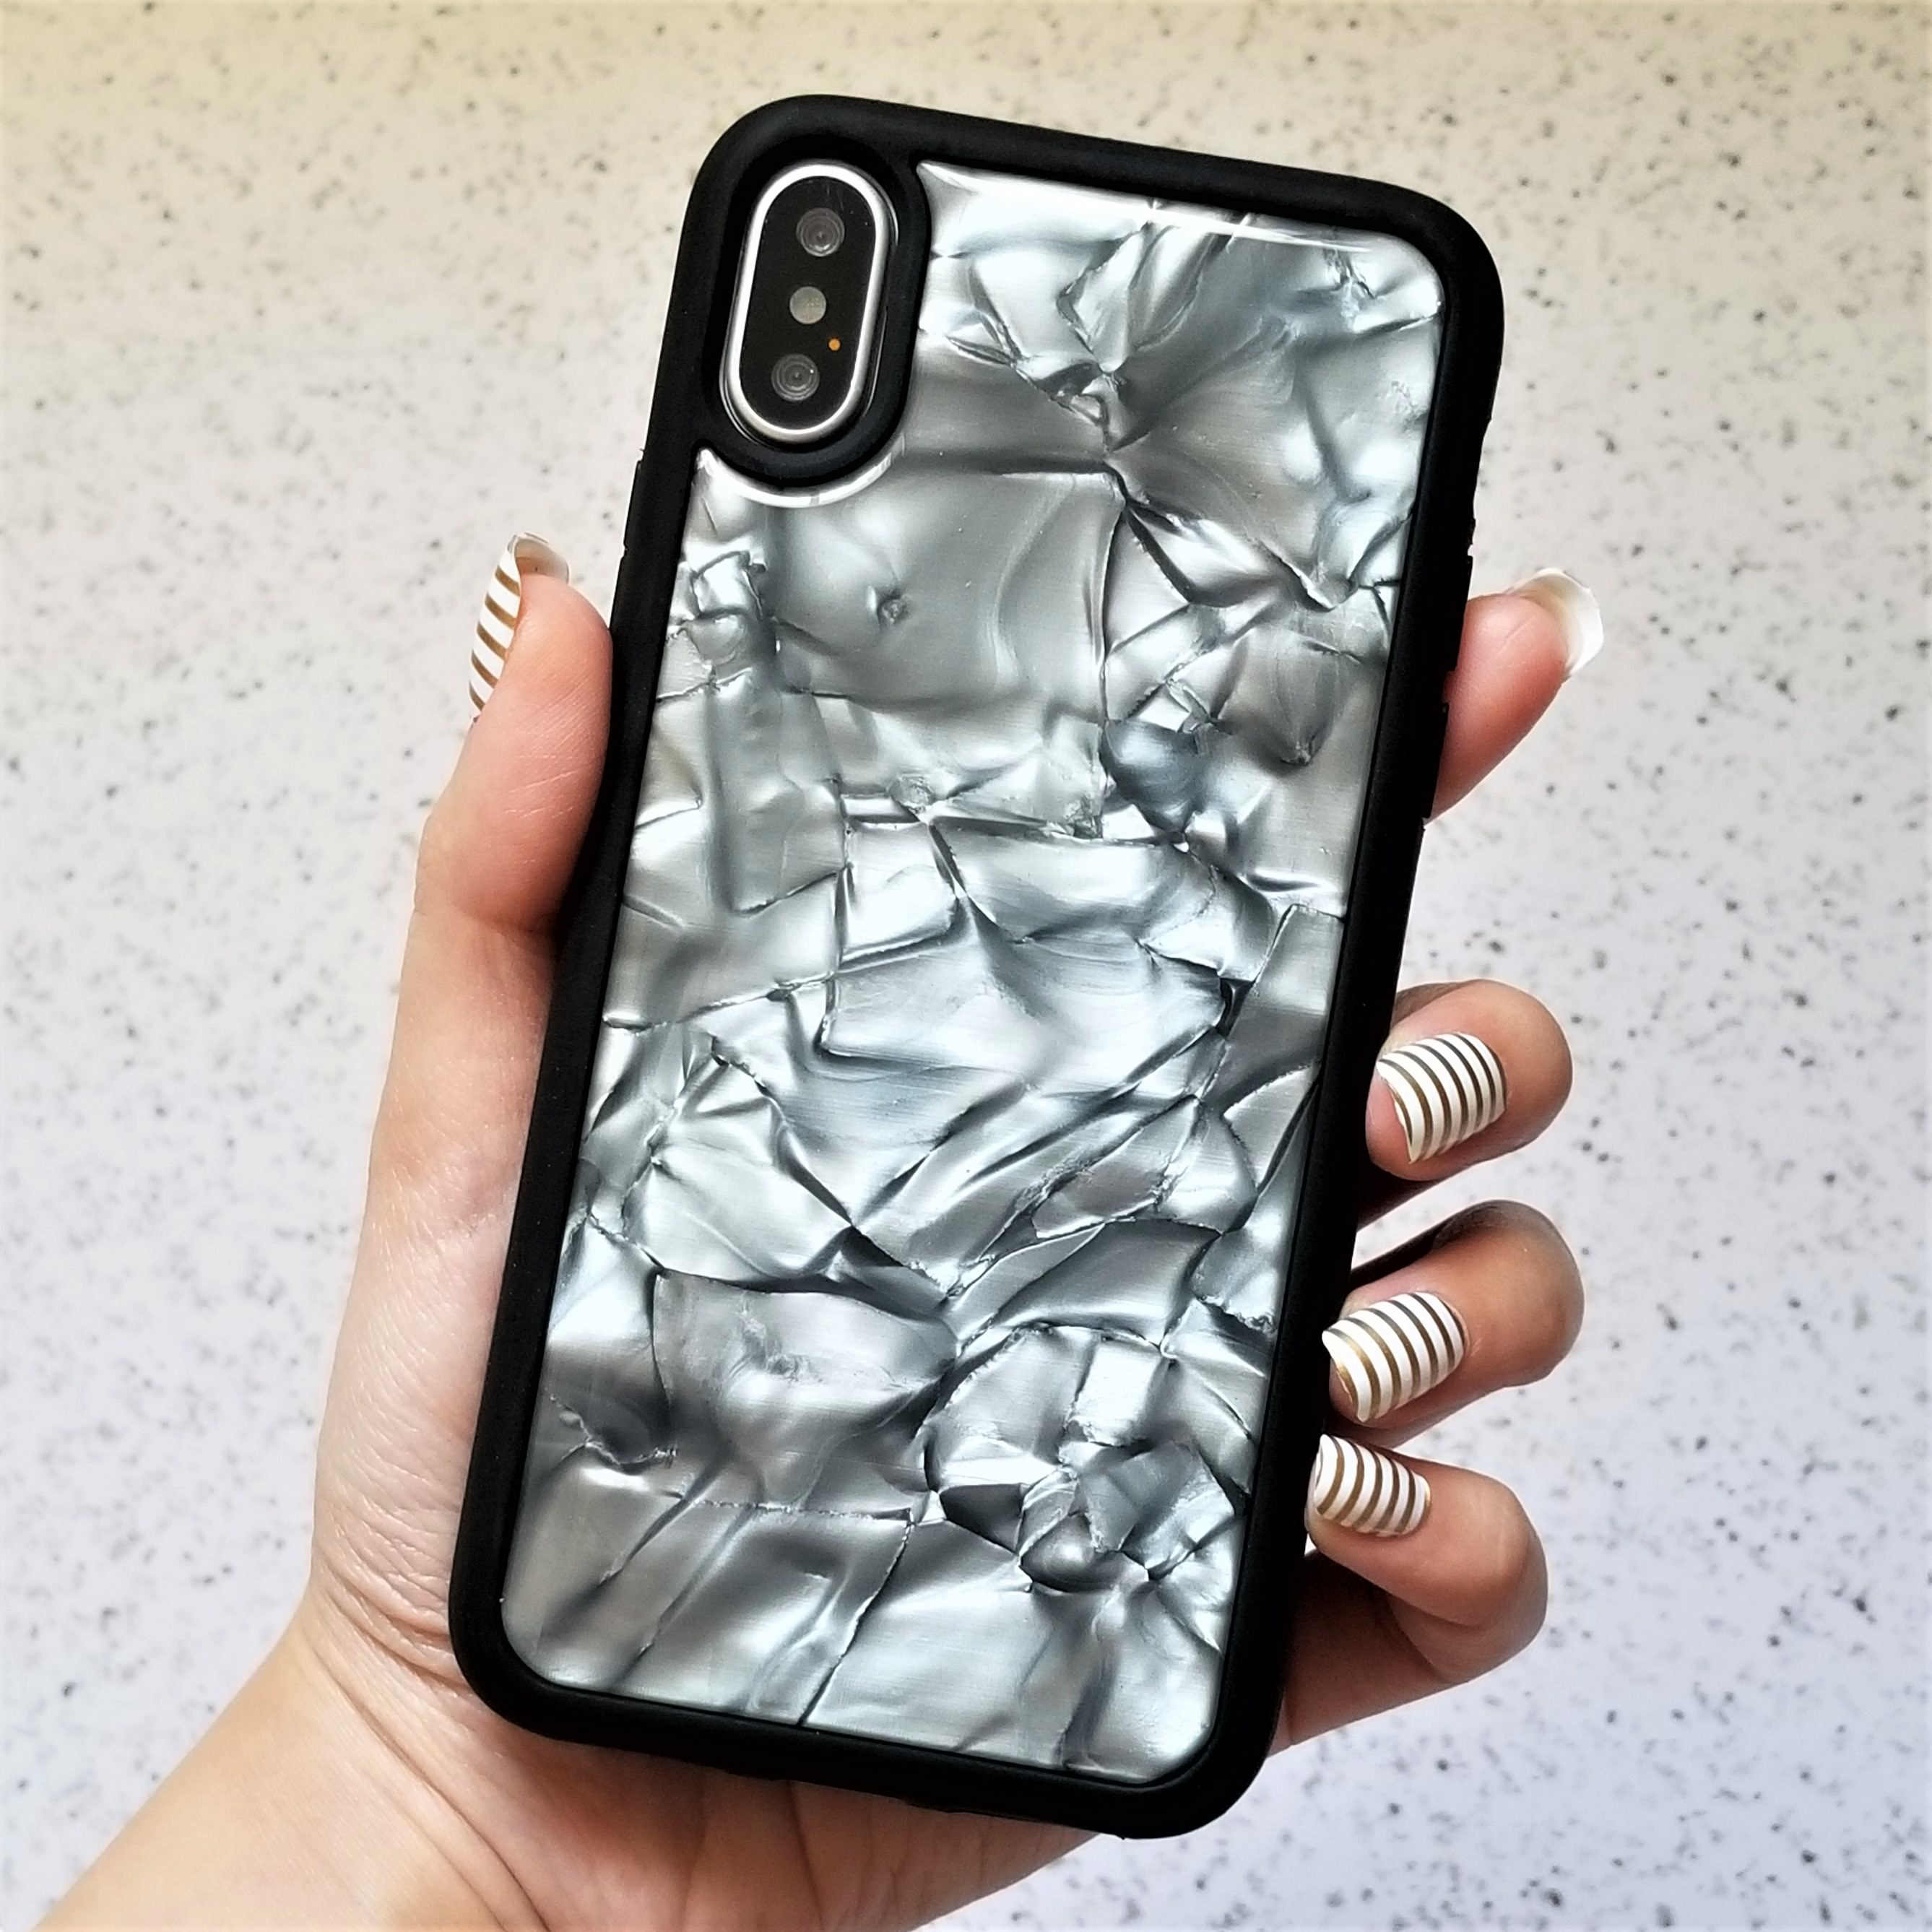 For iPhone X Glossy Crystal Textured Protective Marble Soft Case Cover